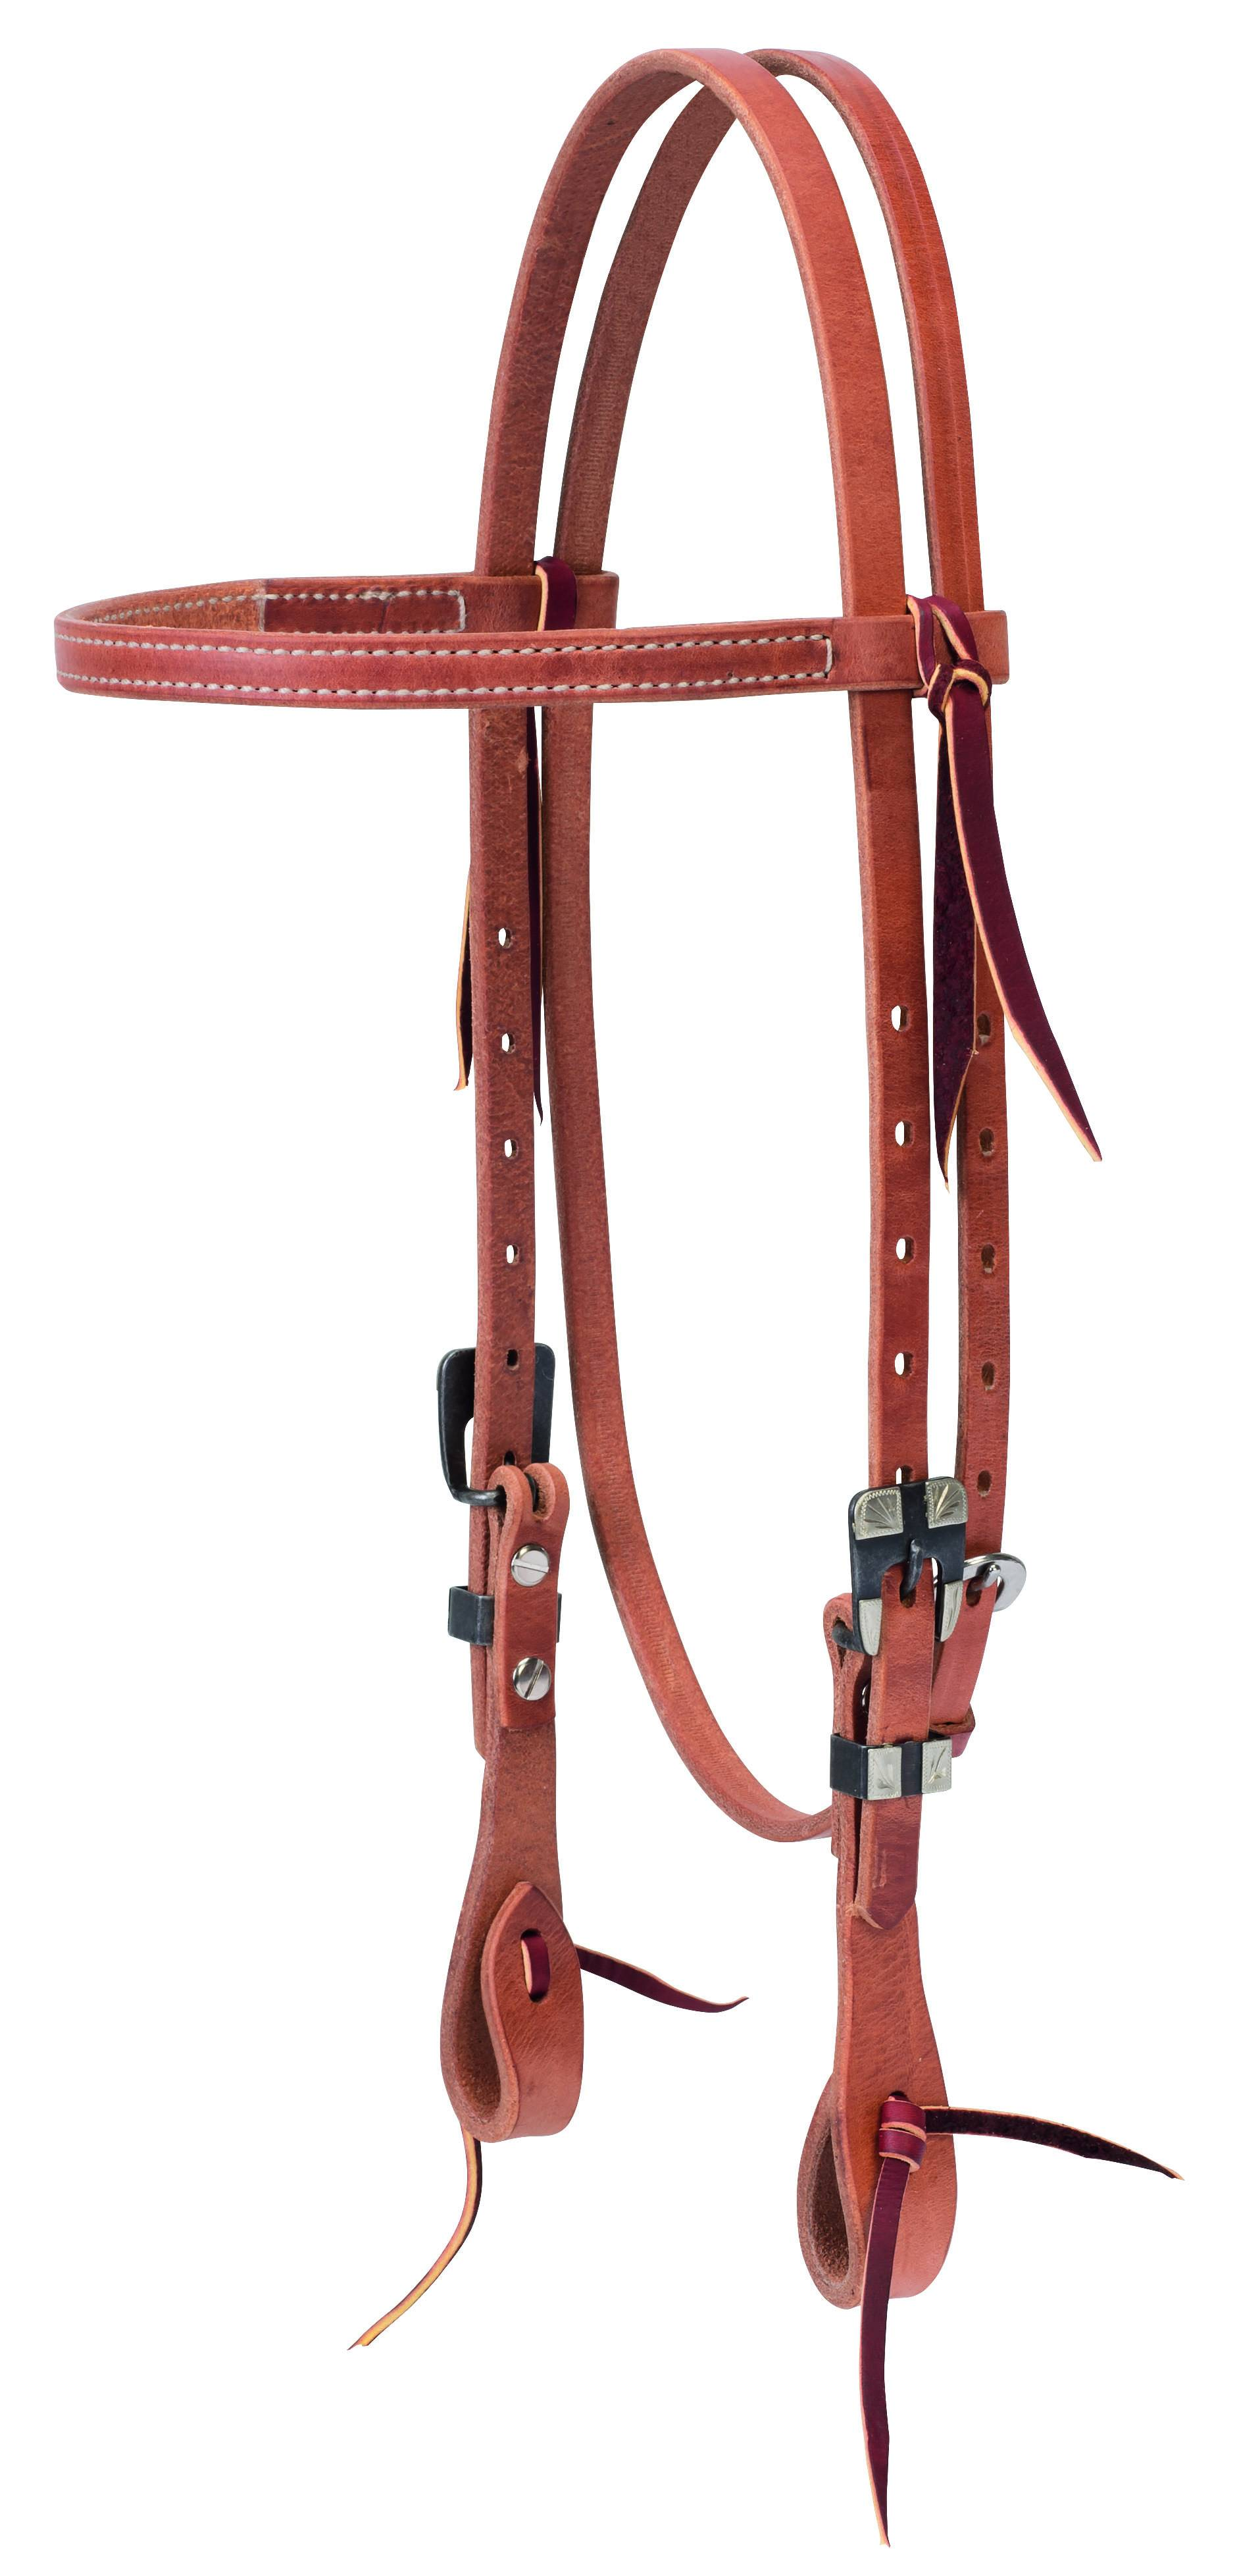 Weaver Prem Harness Leather Straight Browband Headstall - Buff Black Hardware